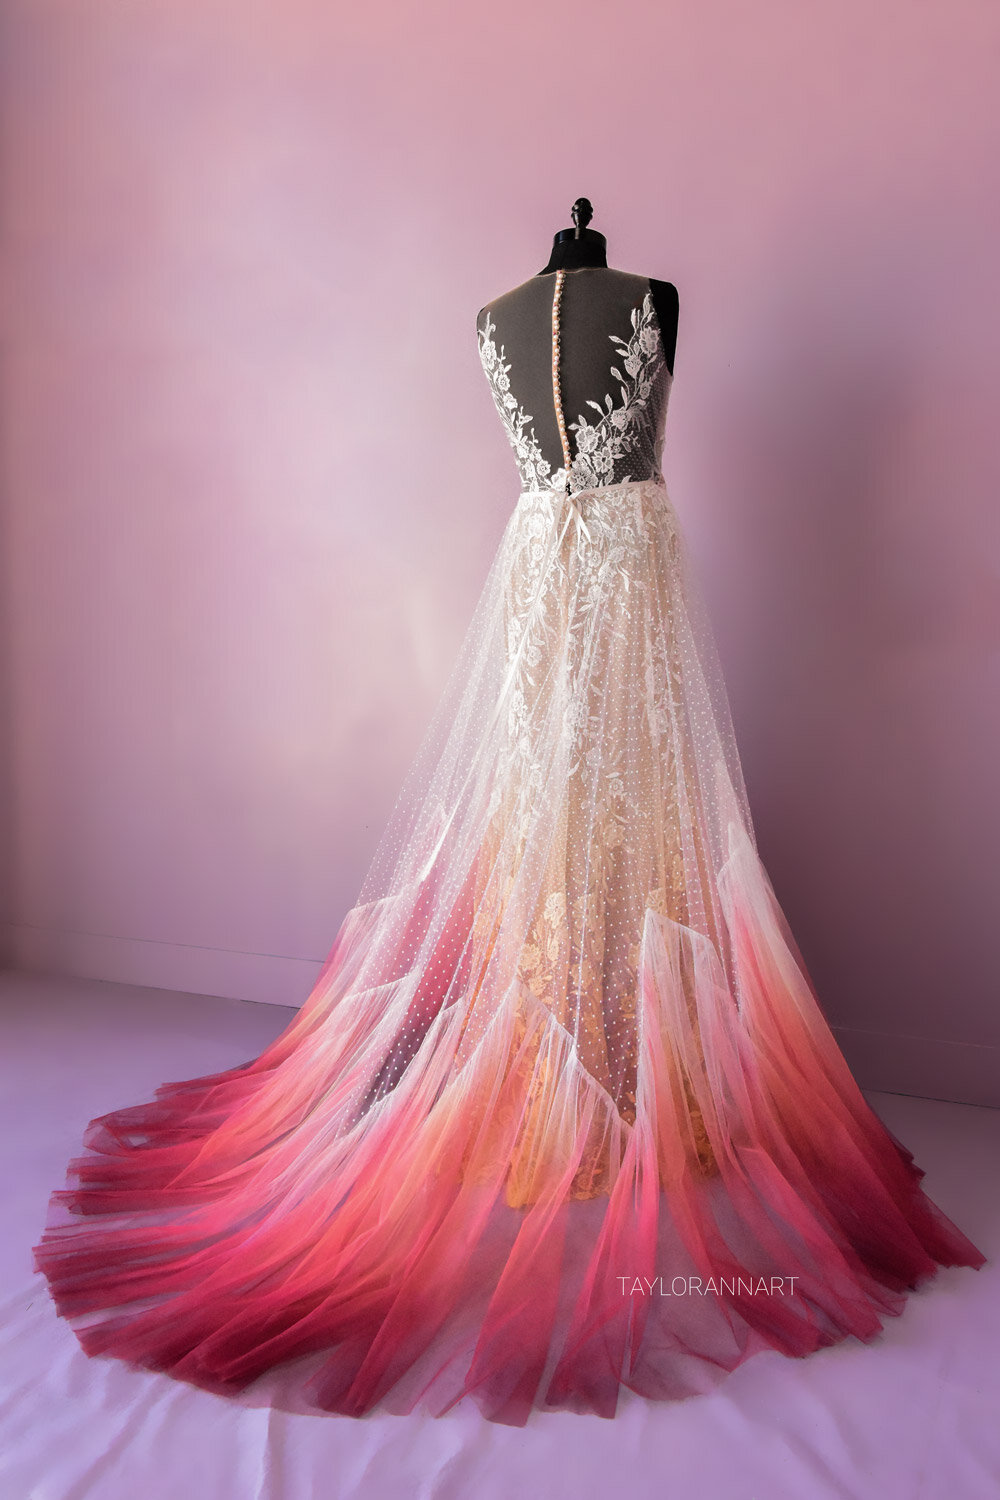 Bridal Gowns Colored By Taylor Ann Art Gallery,Long Sleeve Silk Wedding Dresses